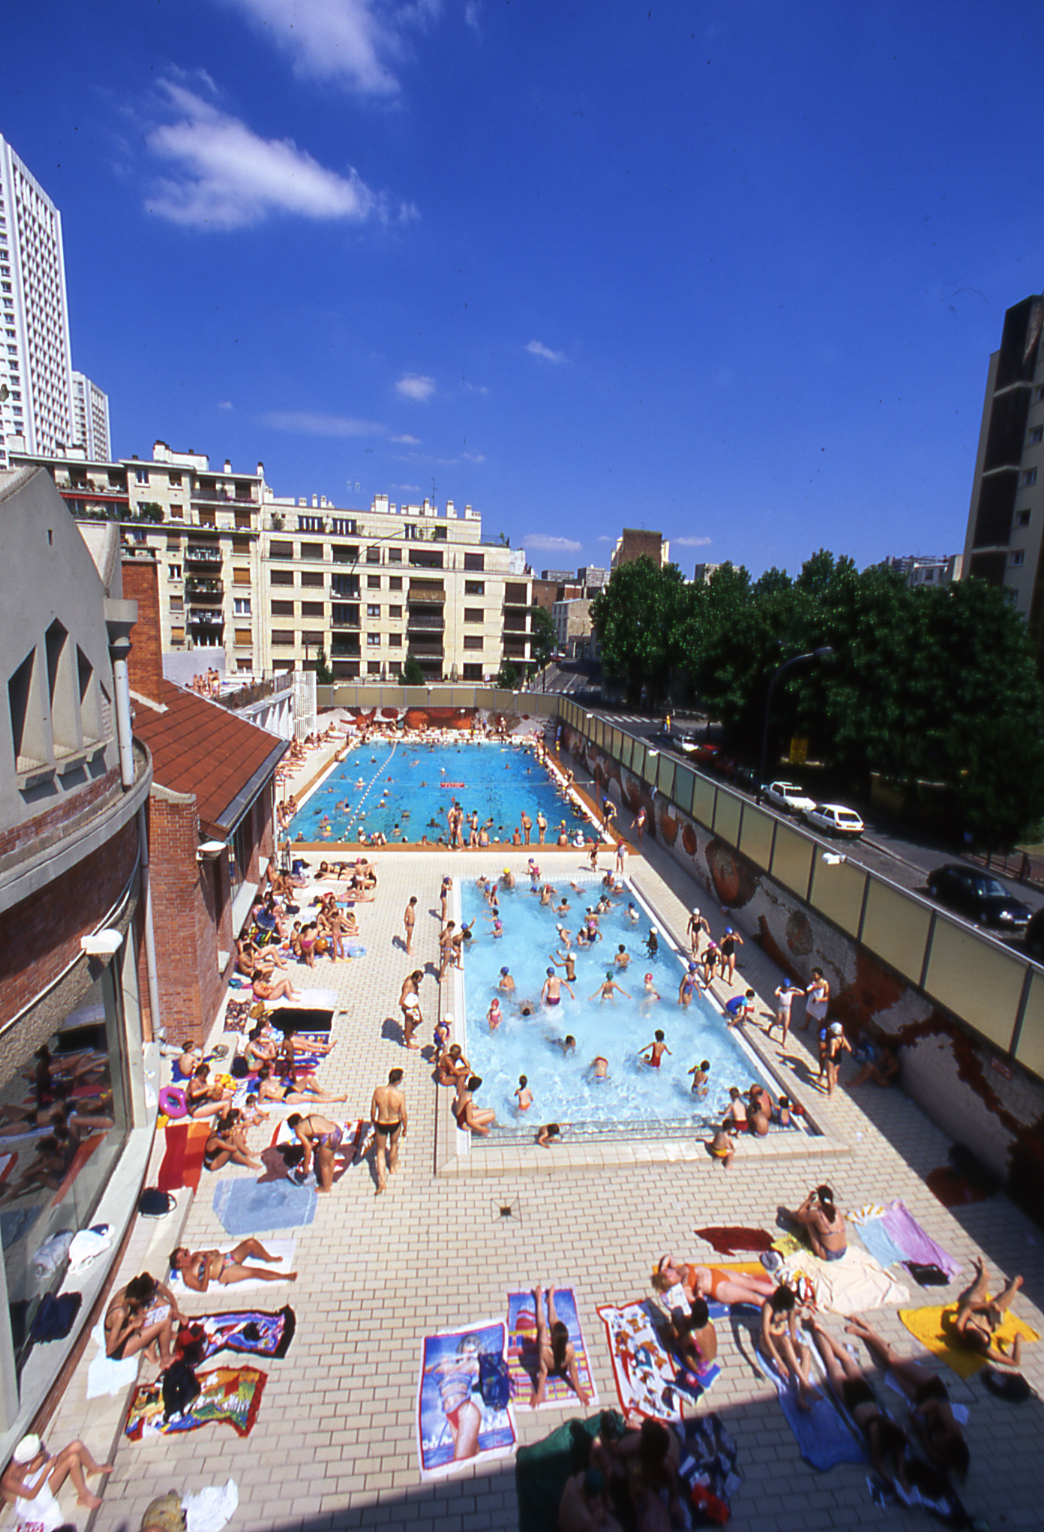 Piscine Butte-Aux-Cailles | Sport And Fitness In Butte-Aux ... avec Piscine De La Butte Aux Cailles